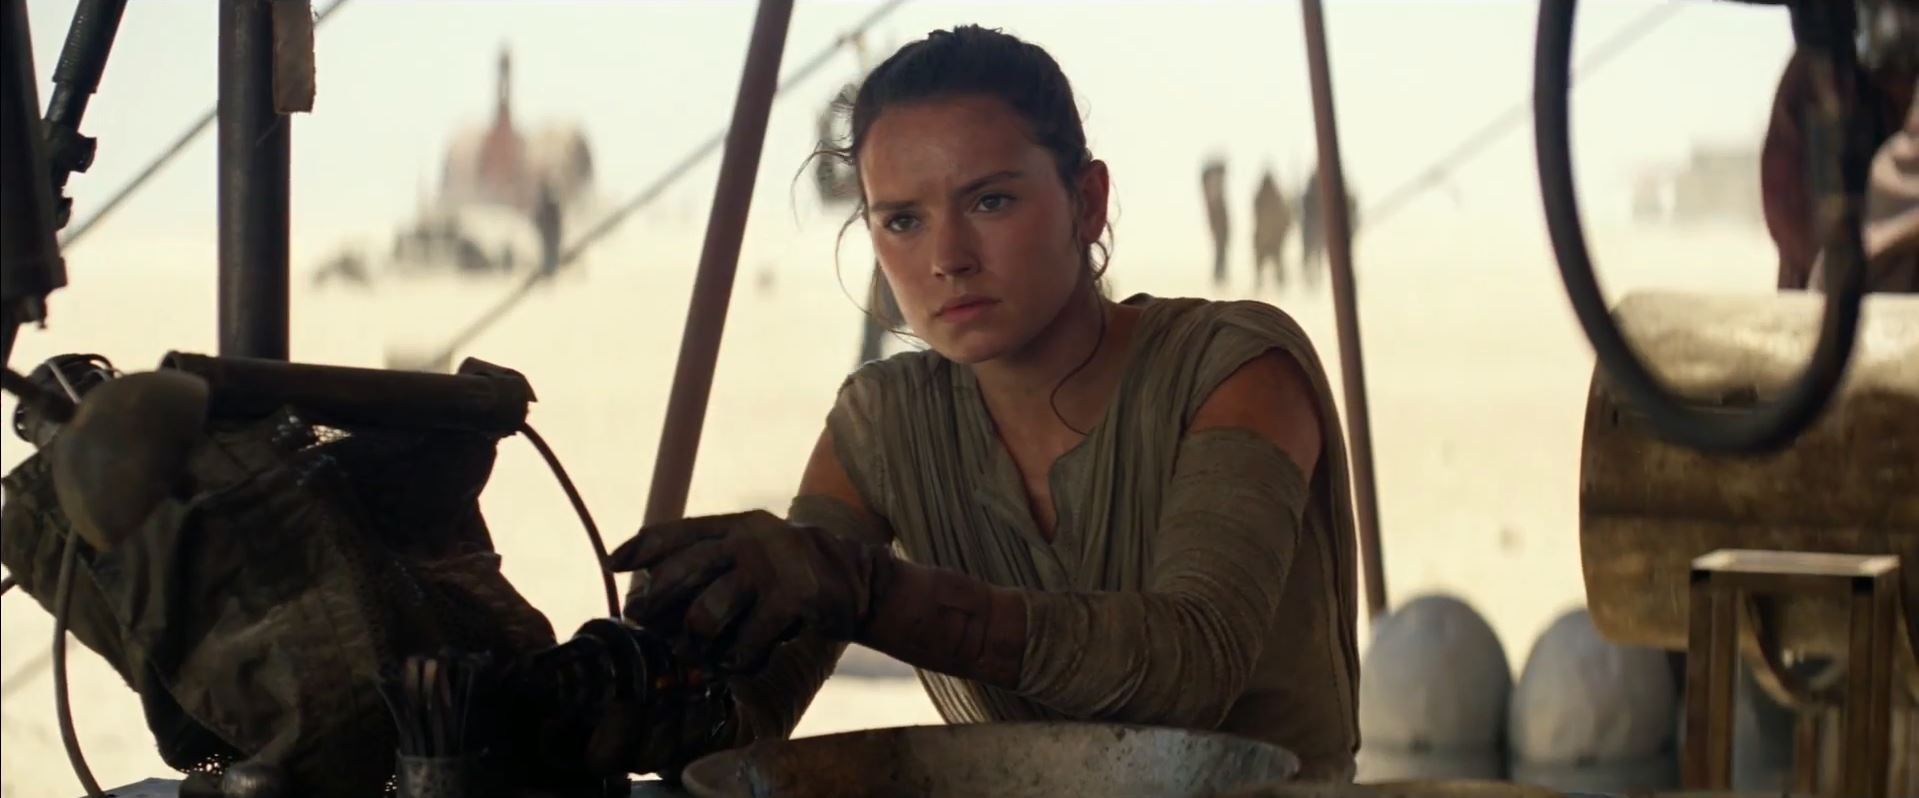 Rey stuck on Jakku. The Force Awakens trailer released